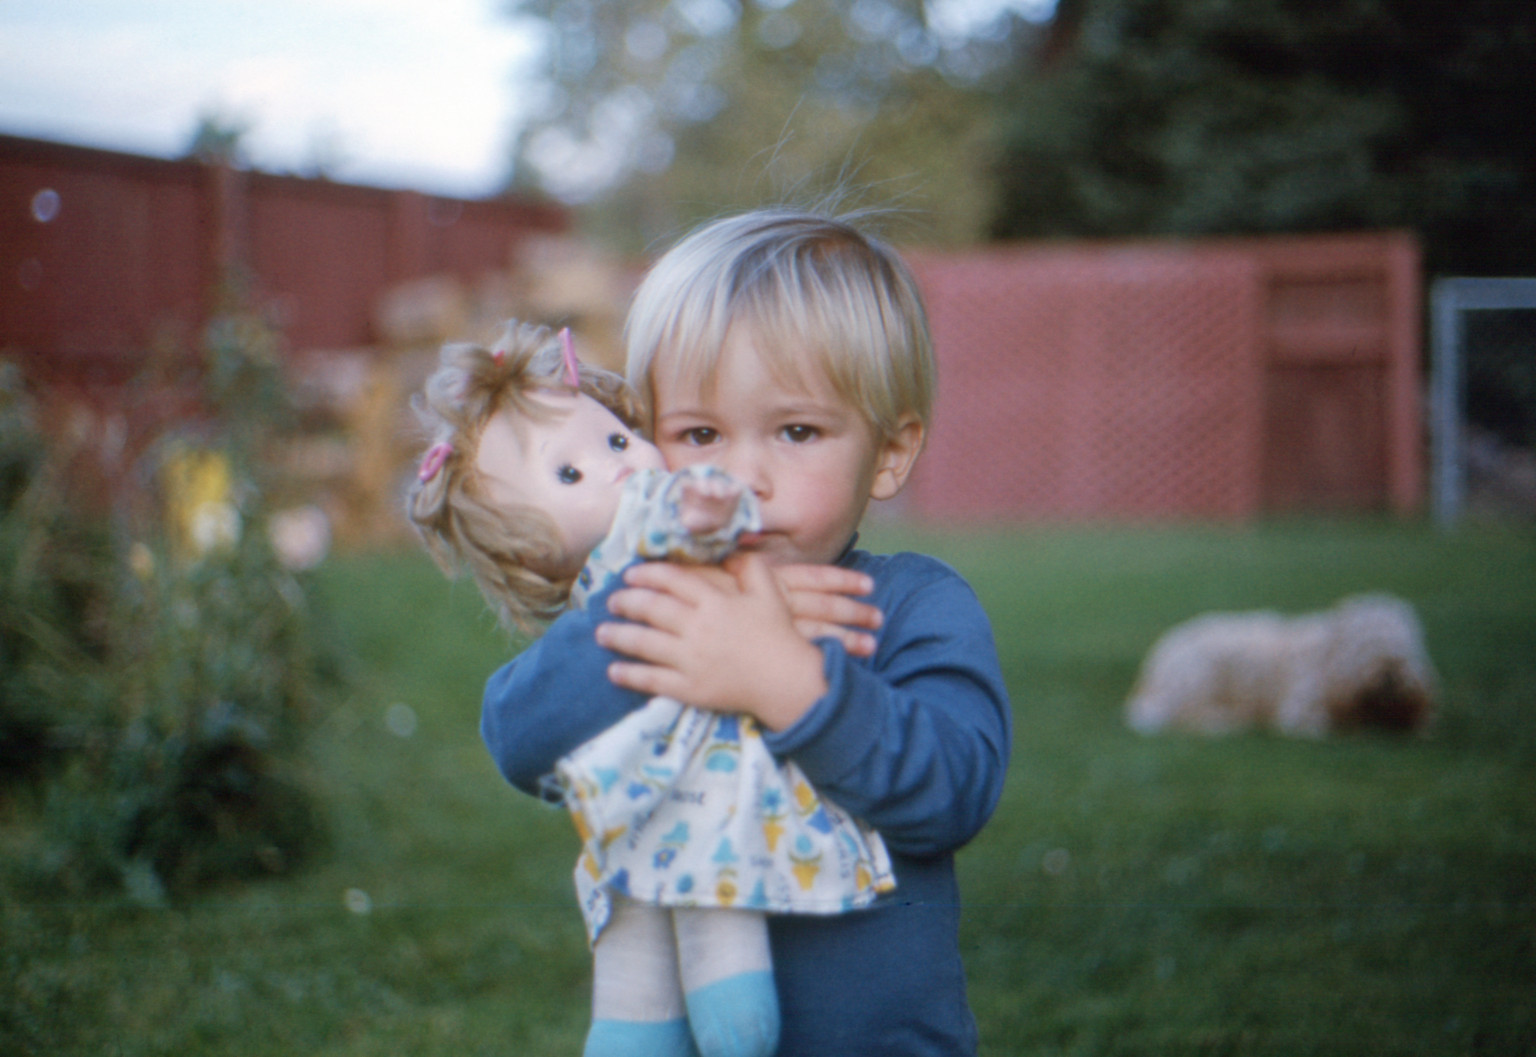 Listen: Should there be specific toys for boys and girls, or does it really matter? Rachael finds out